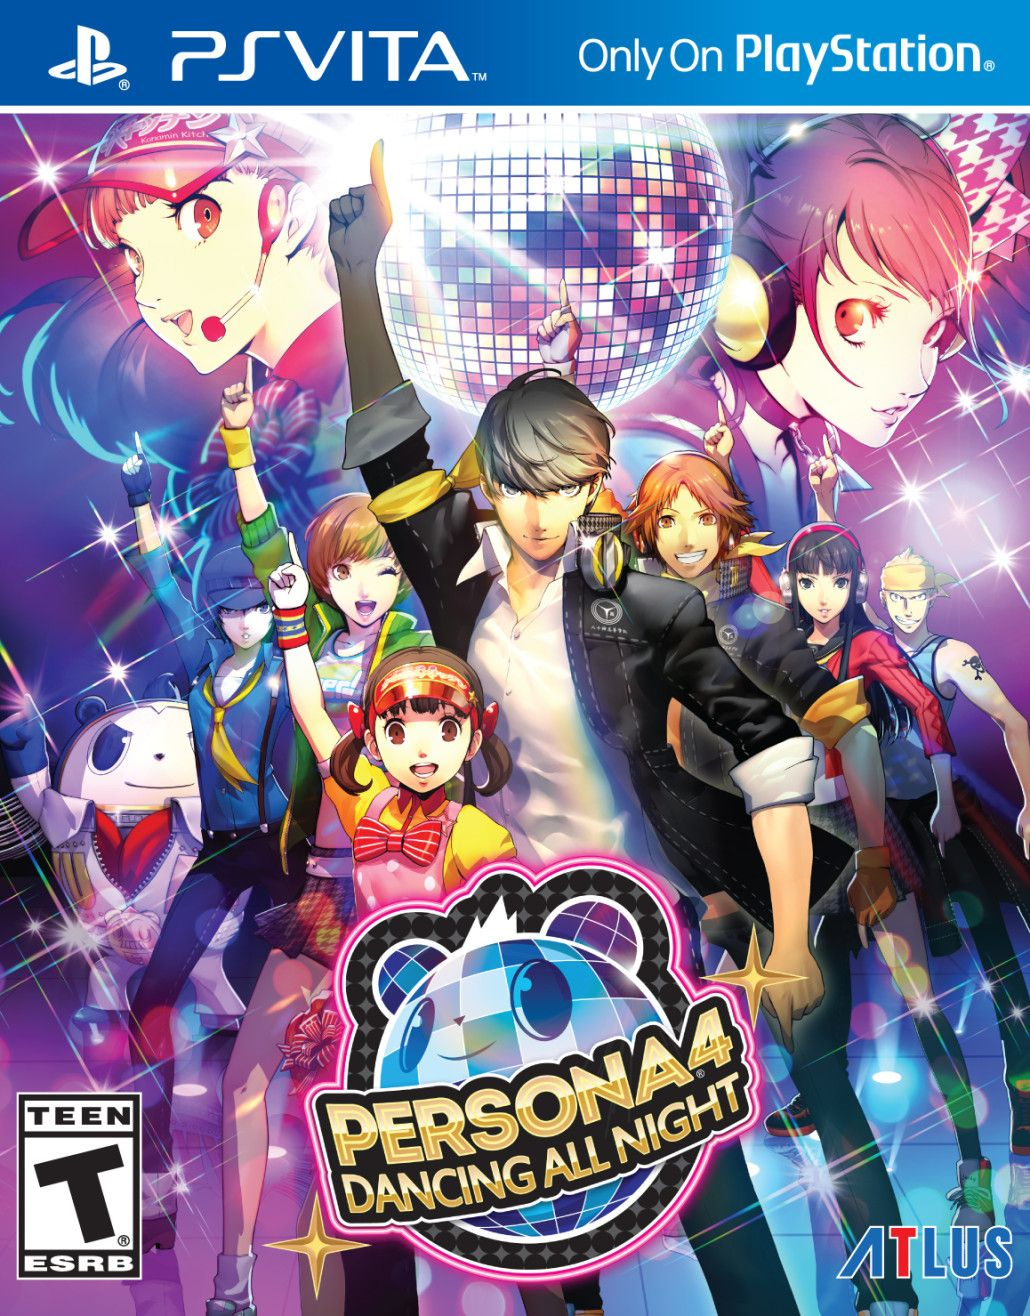 Persona 4 Dancing All Night Review Persona 4, Persona, Anime